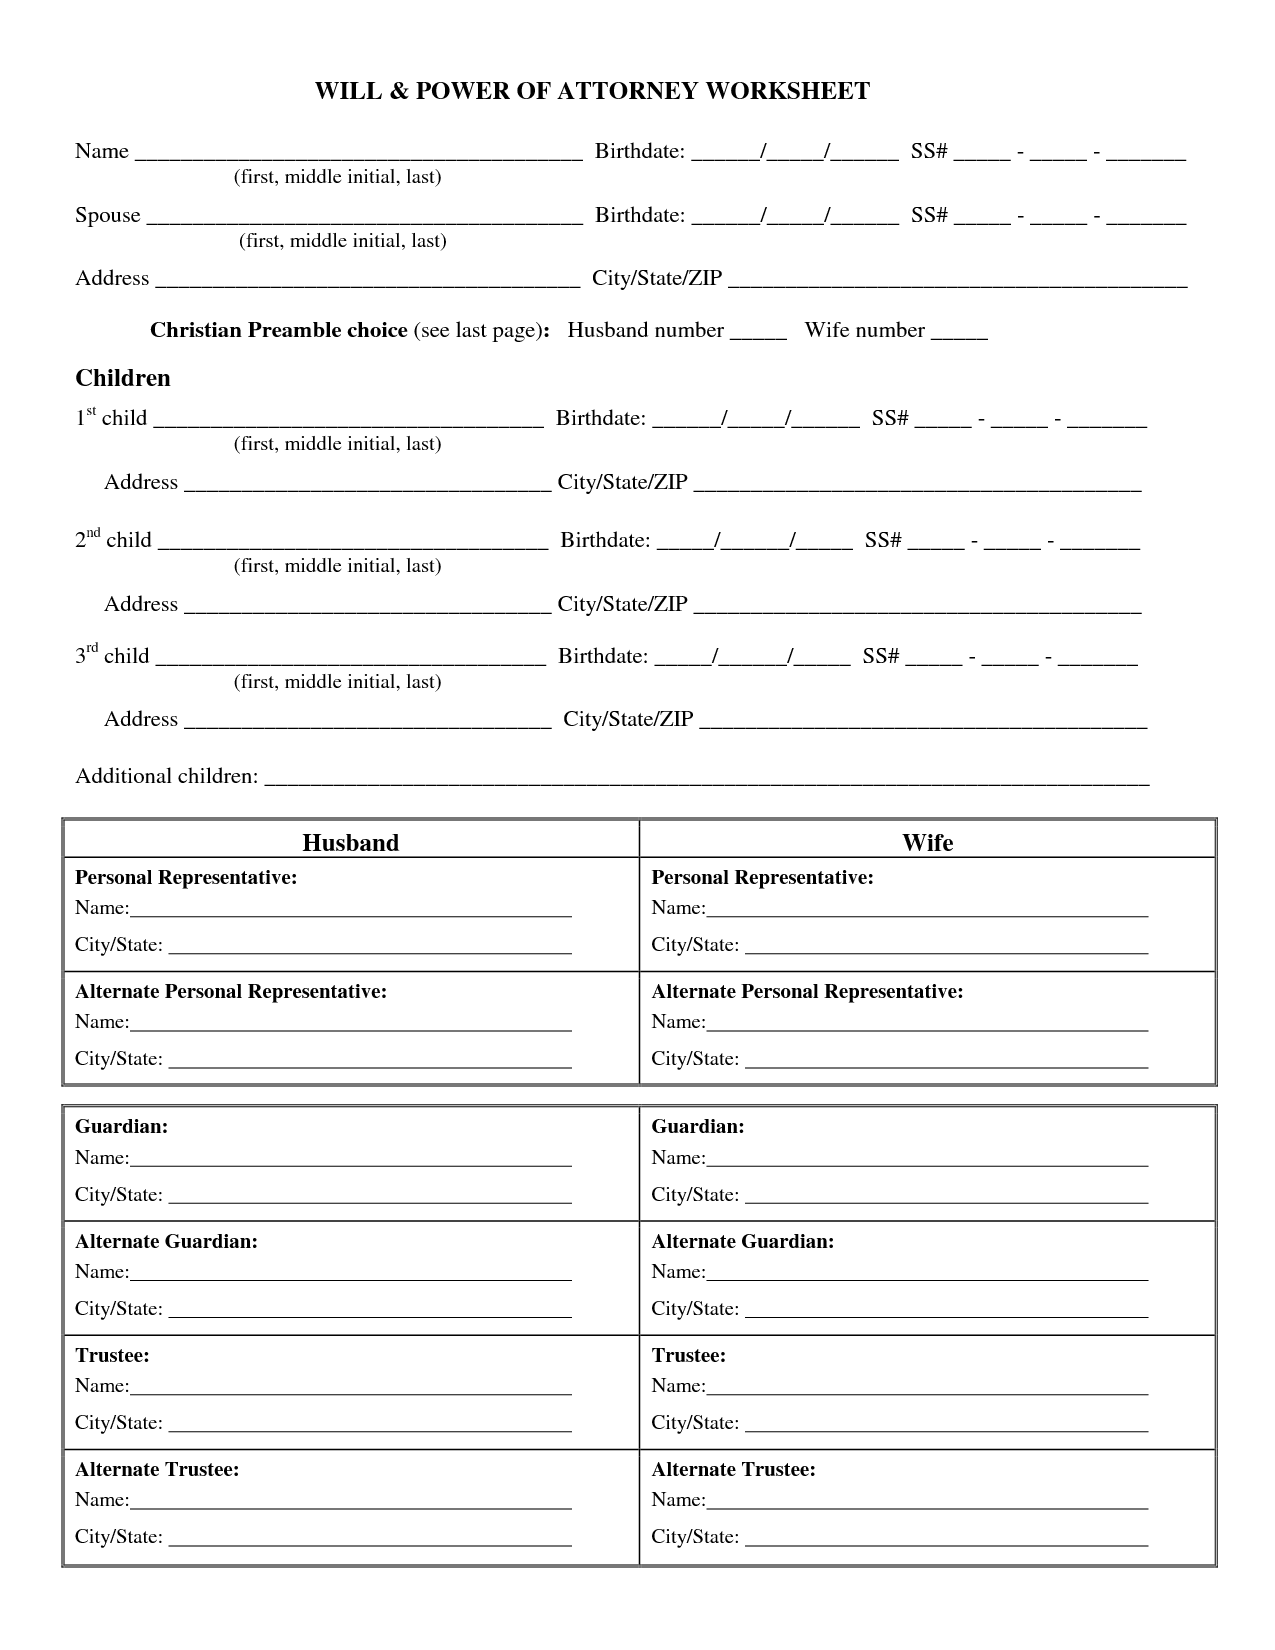 15 Best Images Of Amendments Matching Worksheet Answers